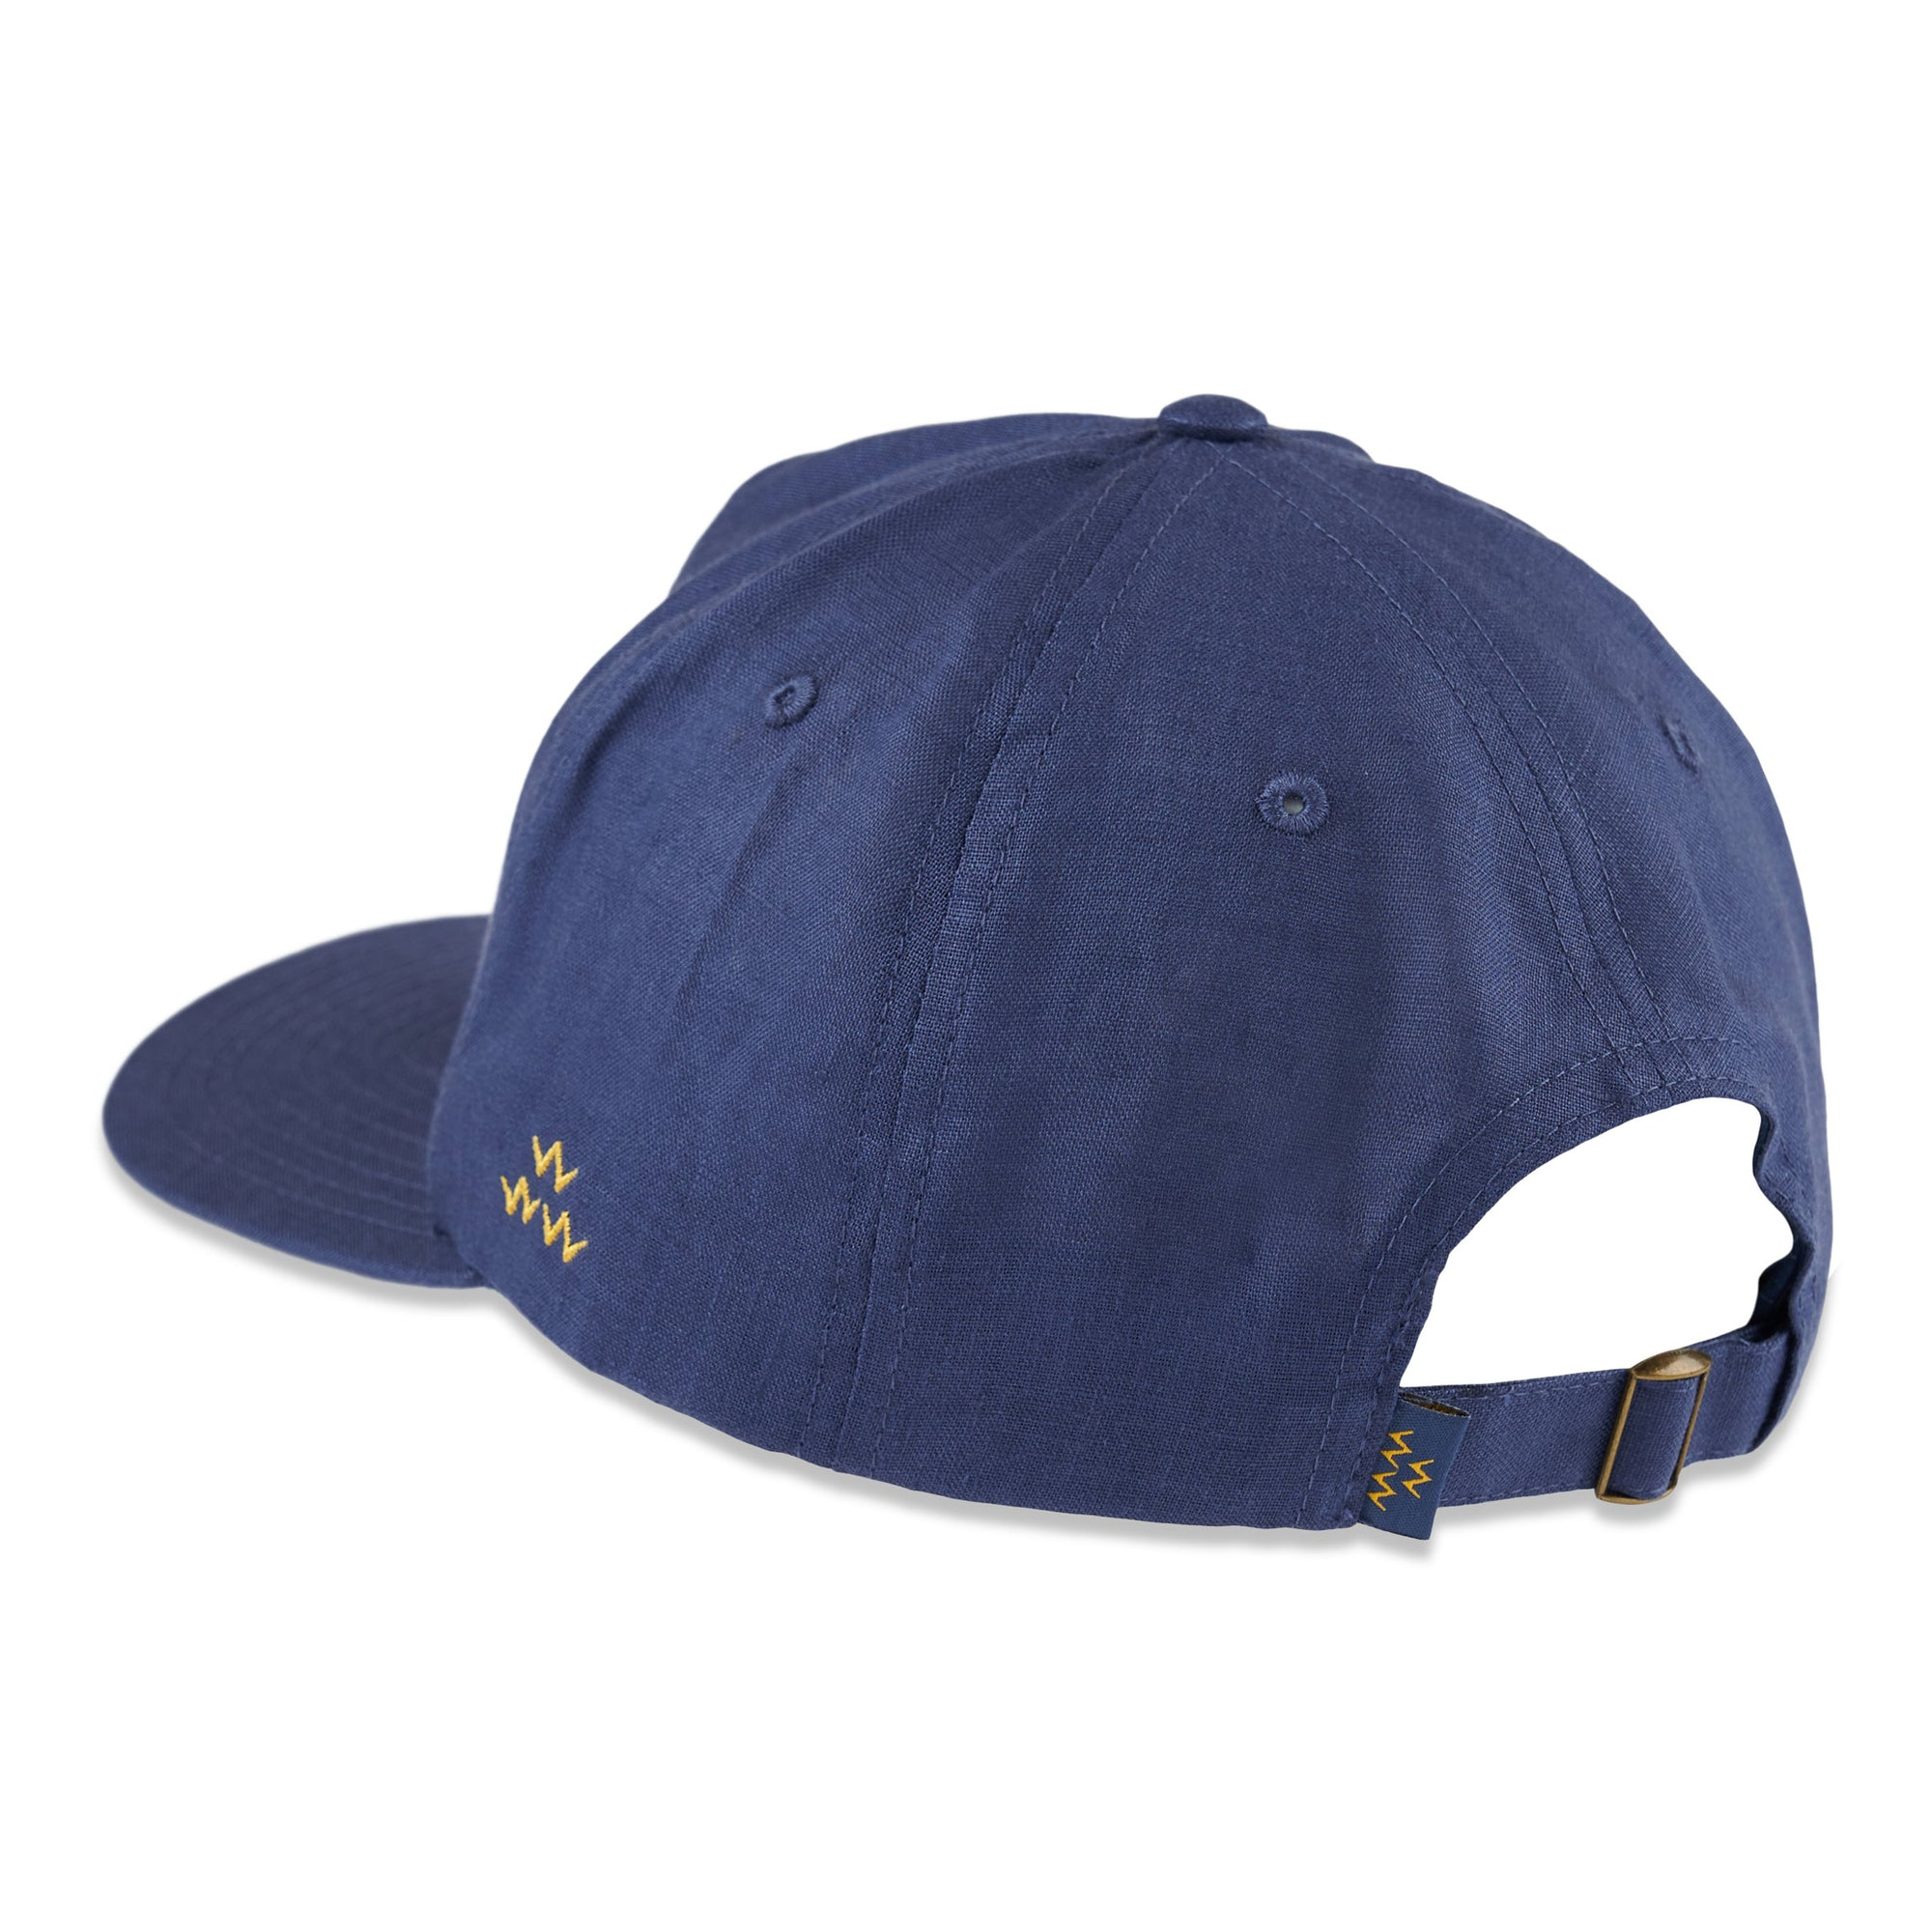 birds-of-condor-blue-hemp-golf-mowie-wowie-hat-cap-front